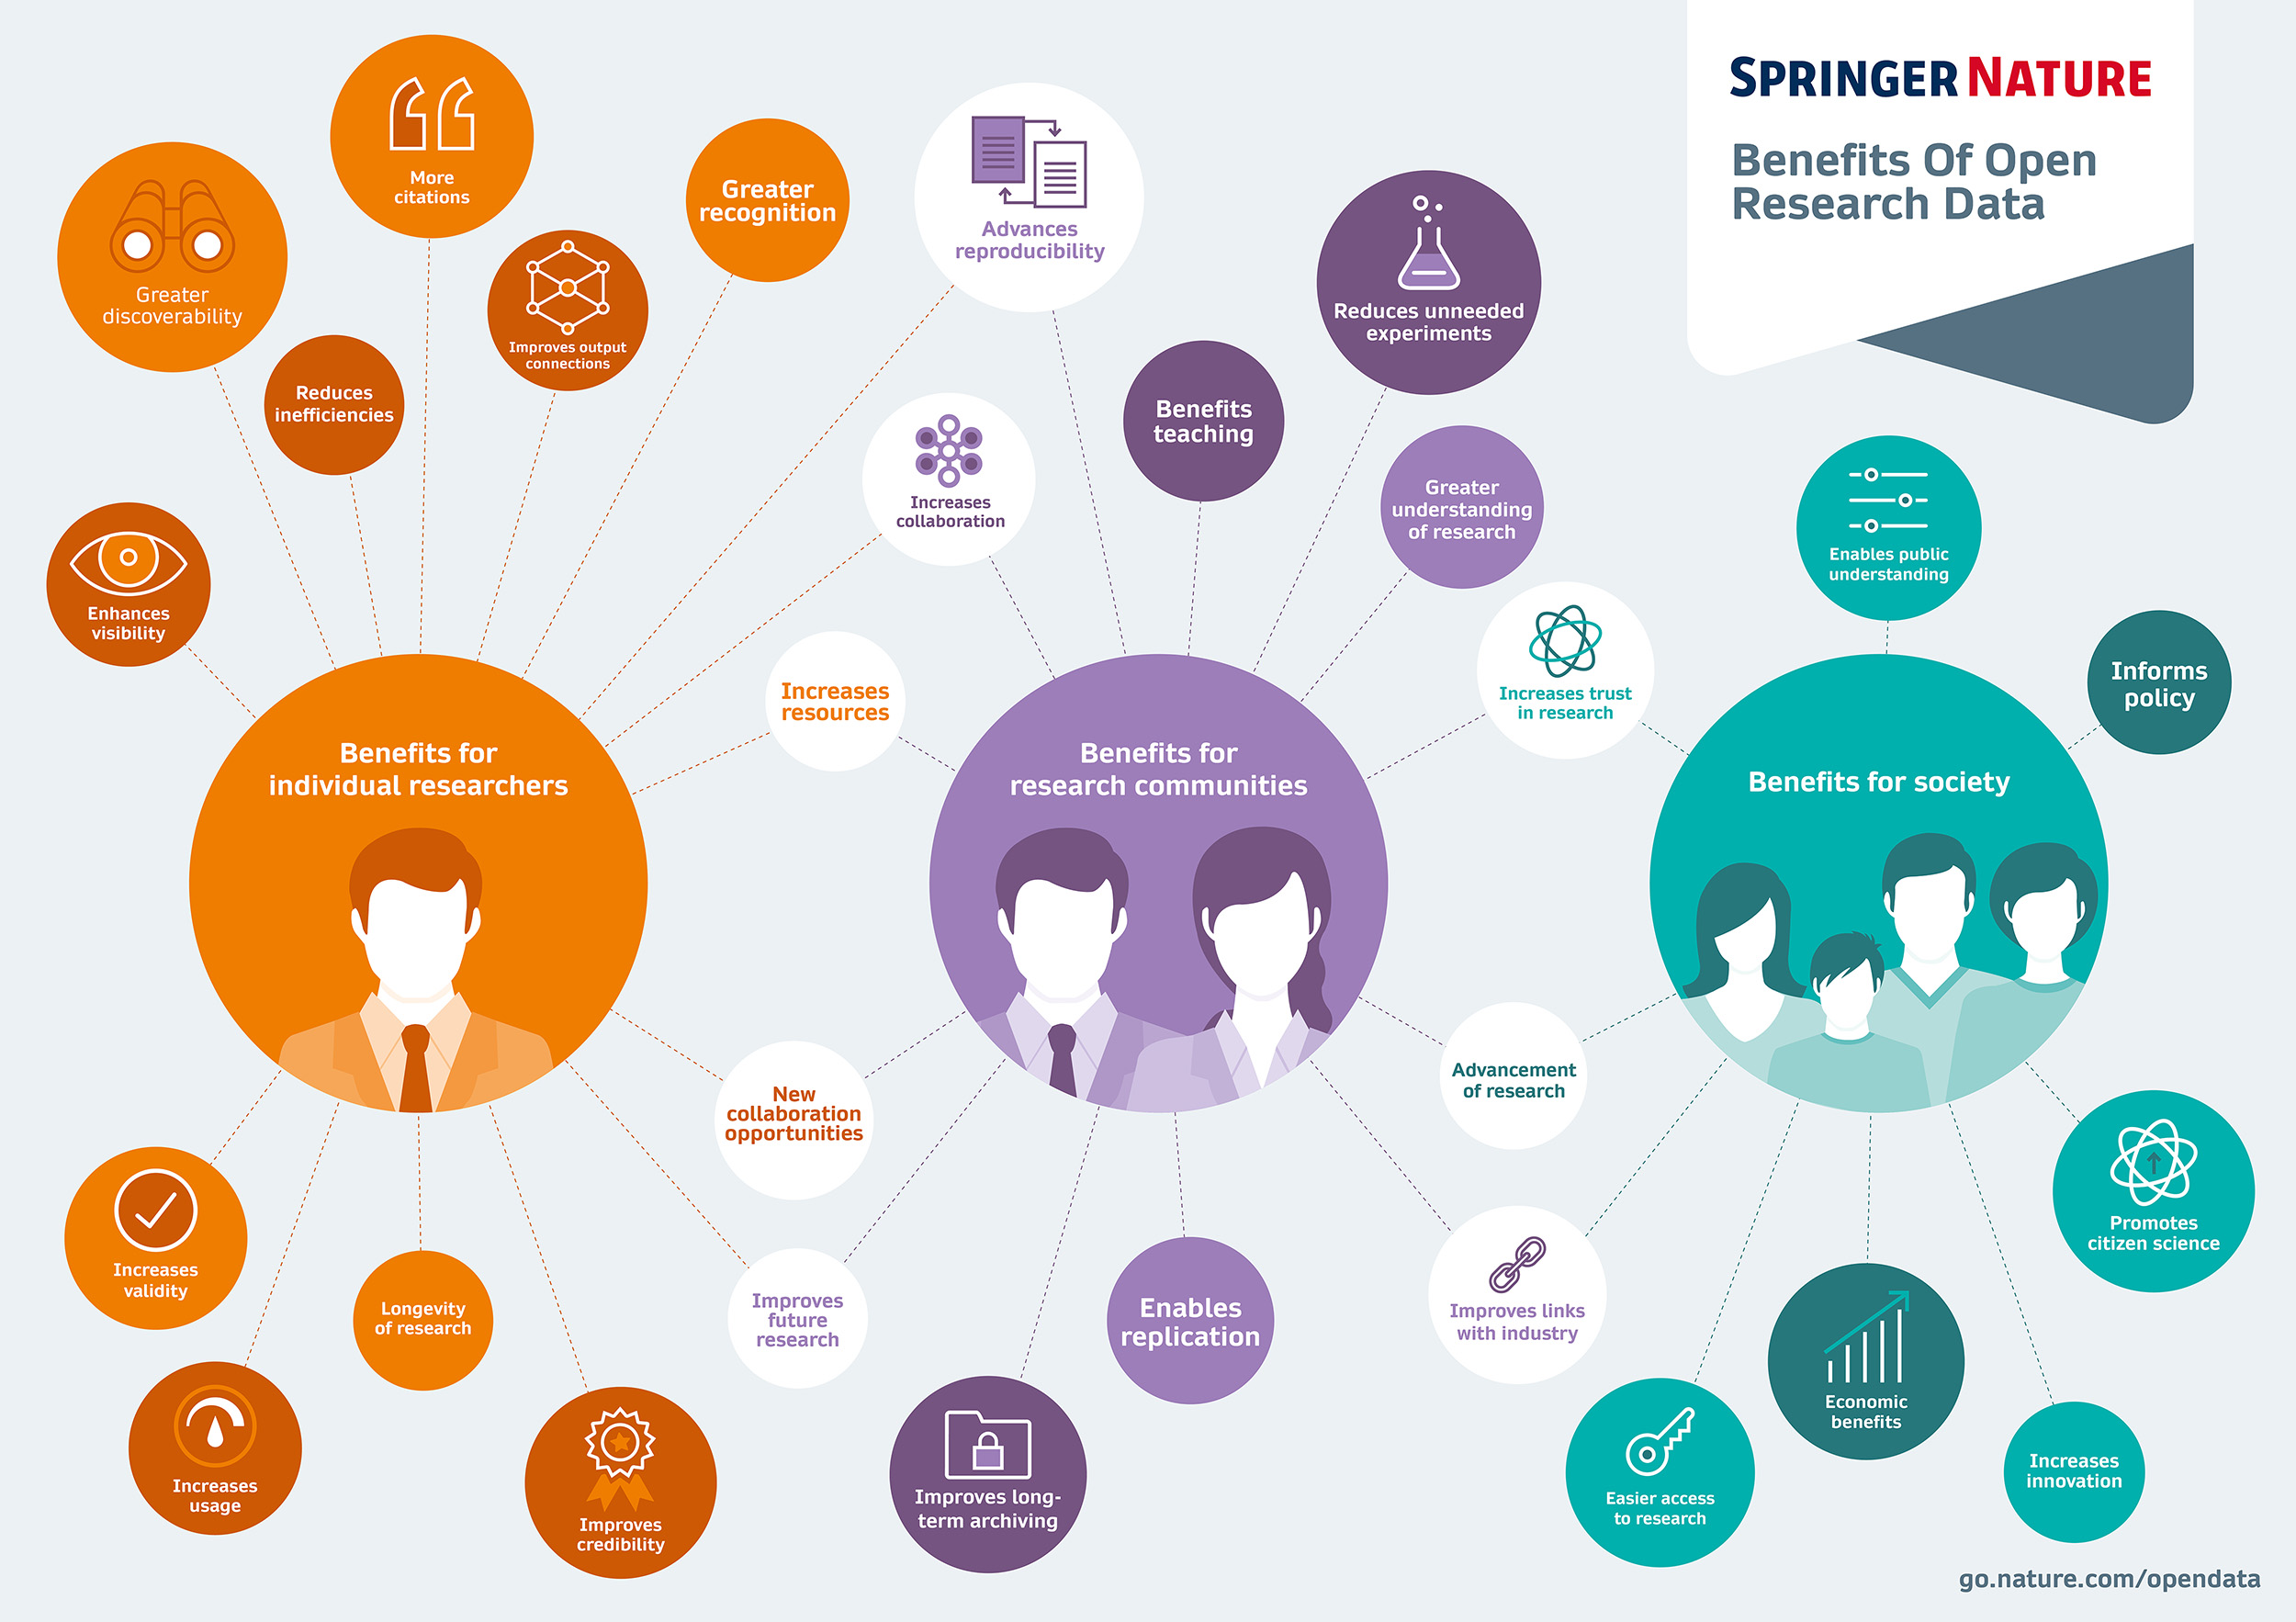 Infographic: What are the Benefits of Open Research Data?